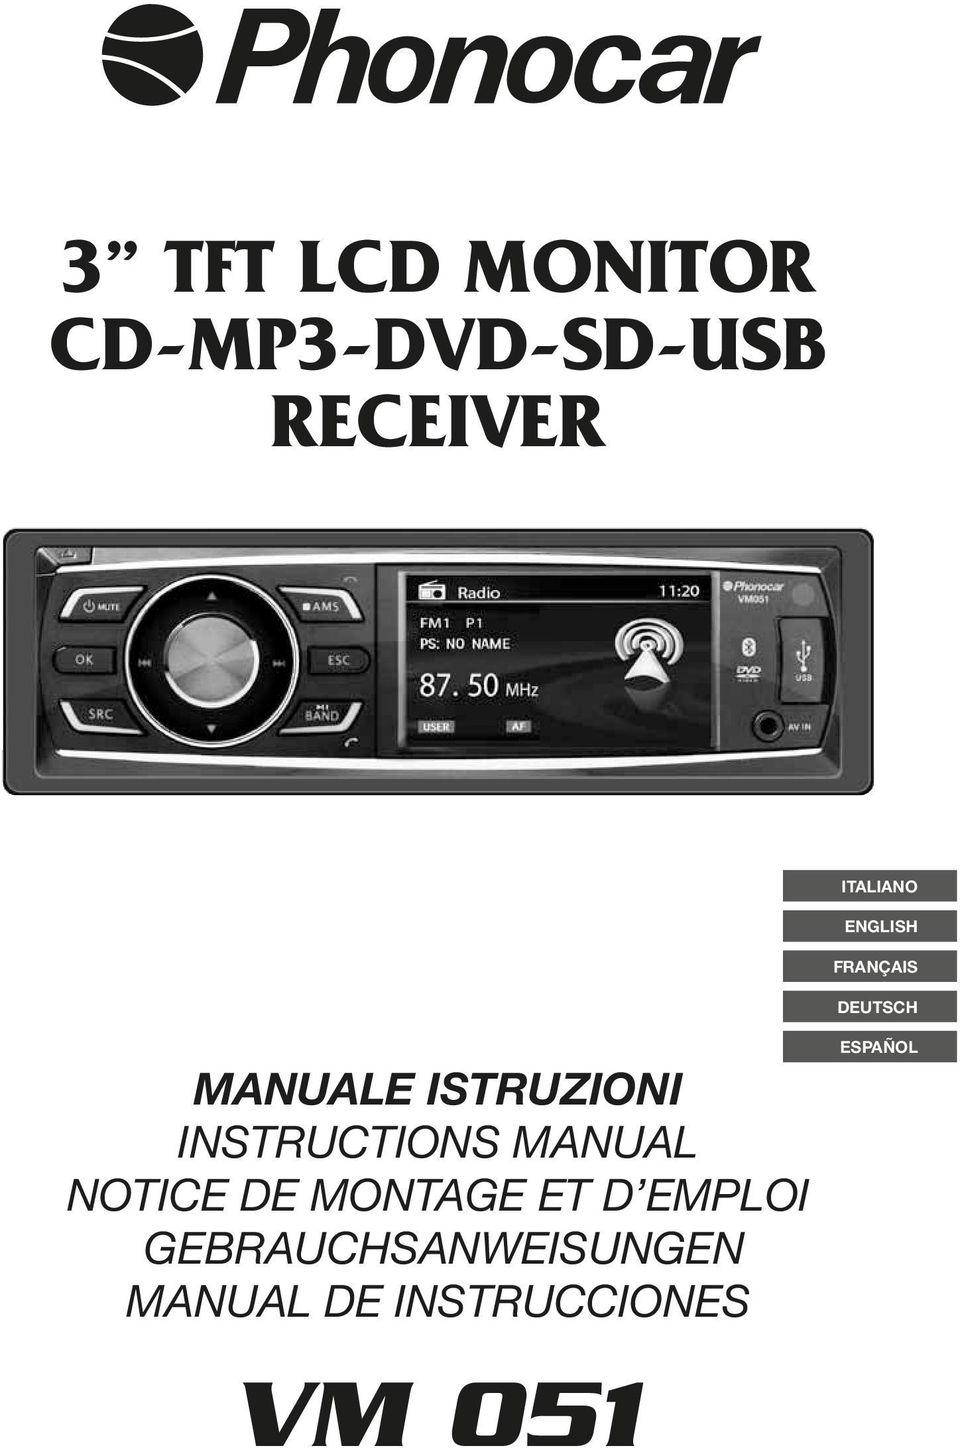 ISTRUZIONI INSTRUCTIONS MANUAL NOTICE DE MONTAGE ET